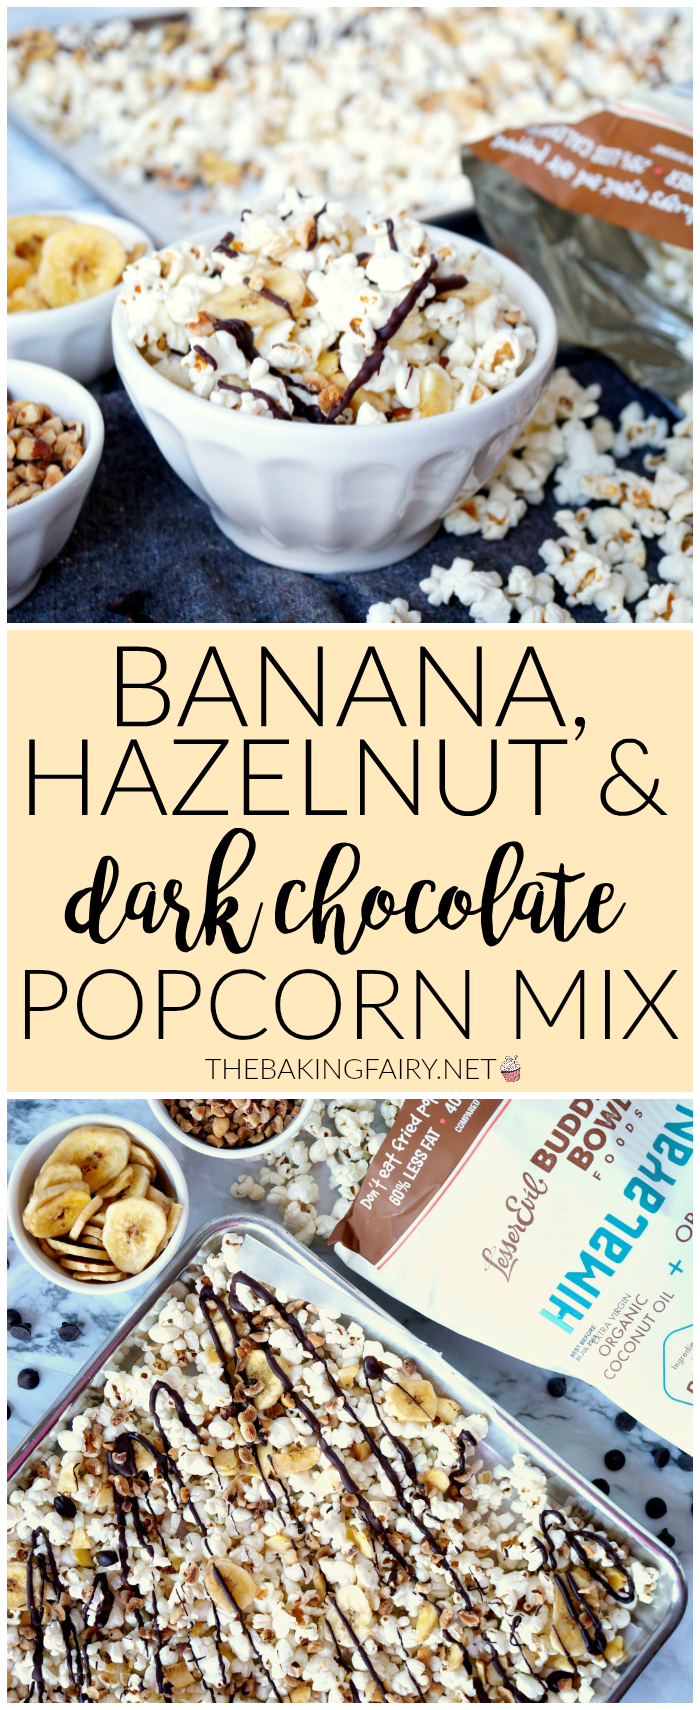 banana, hazelnut, and dark chocolate popcorn snack mix | The Baking Fairy #NewYearLessEvil #ad